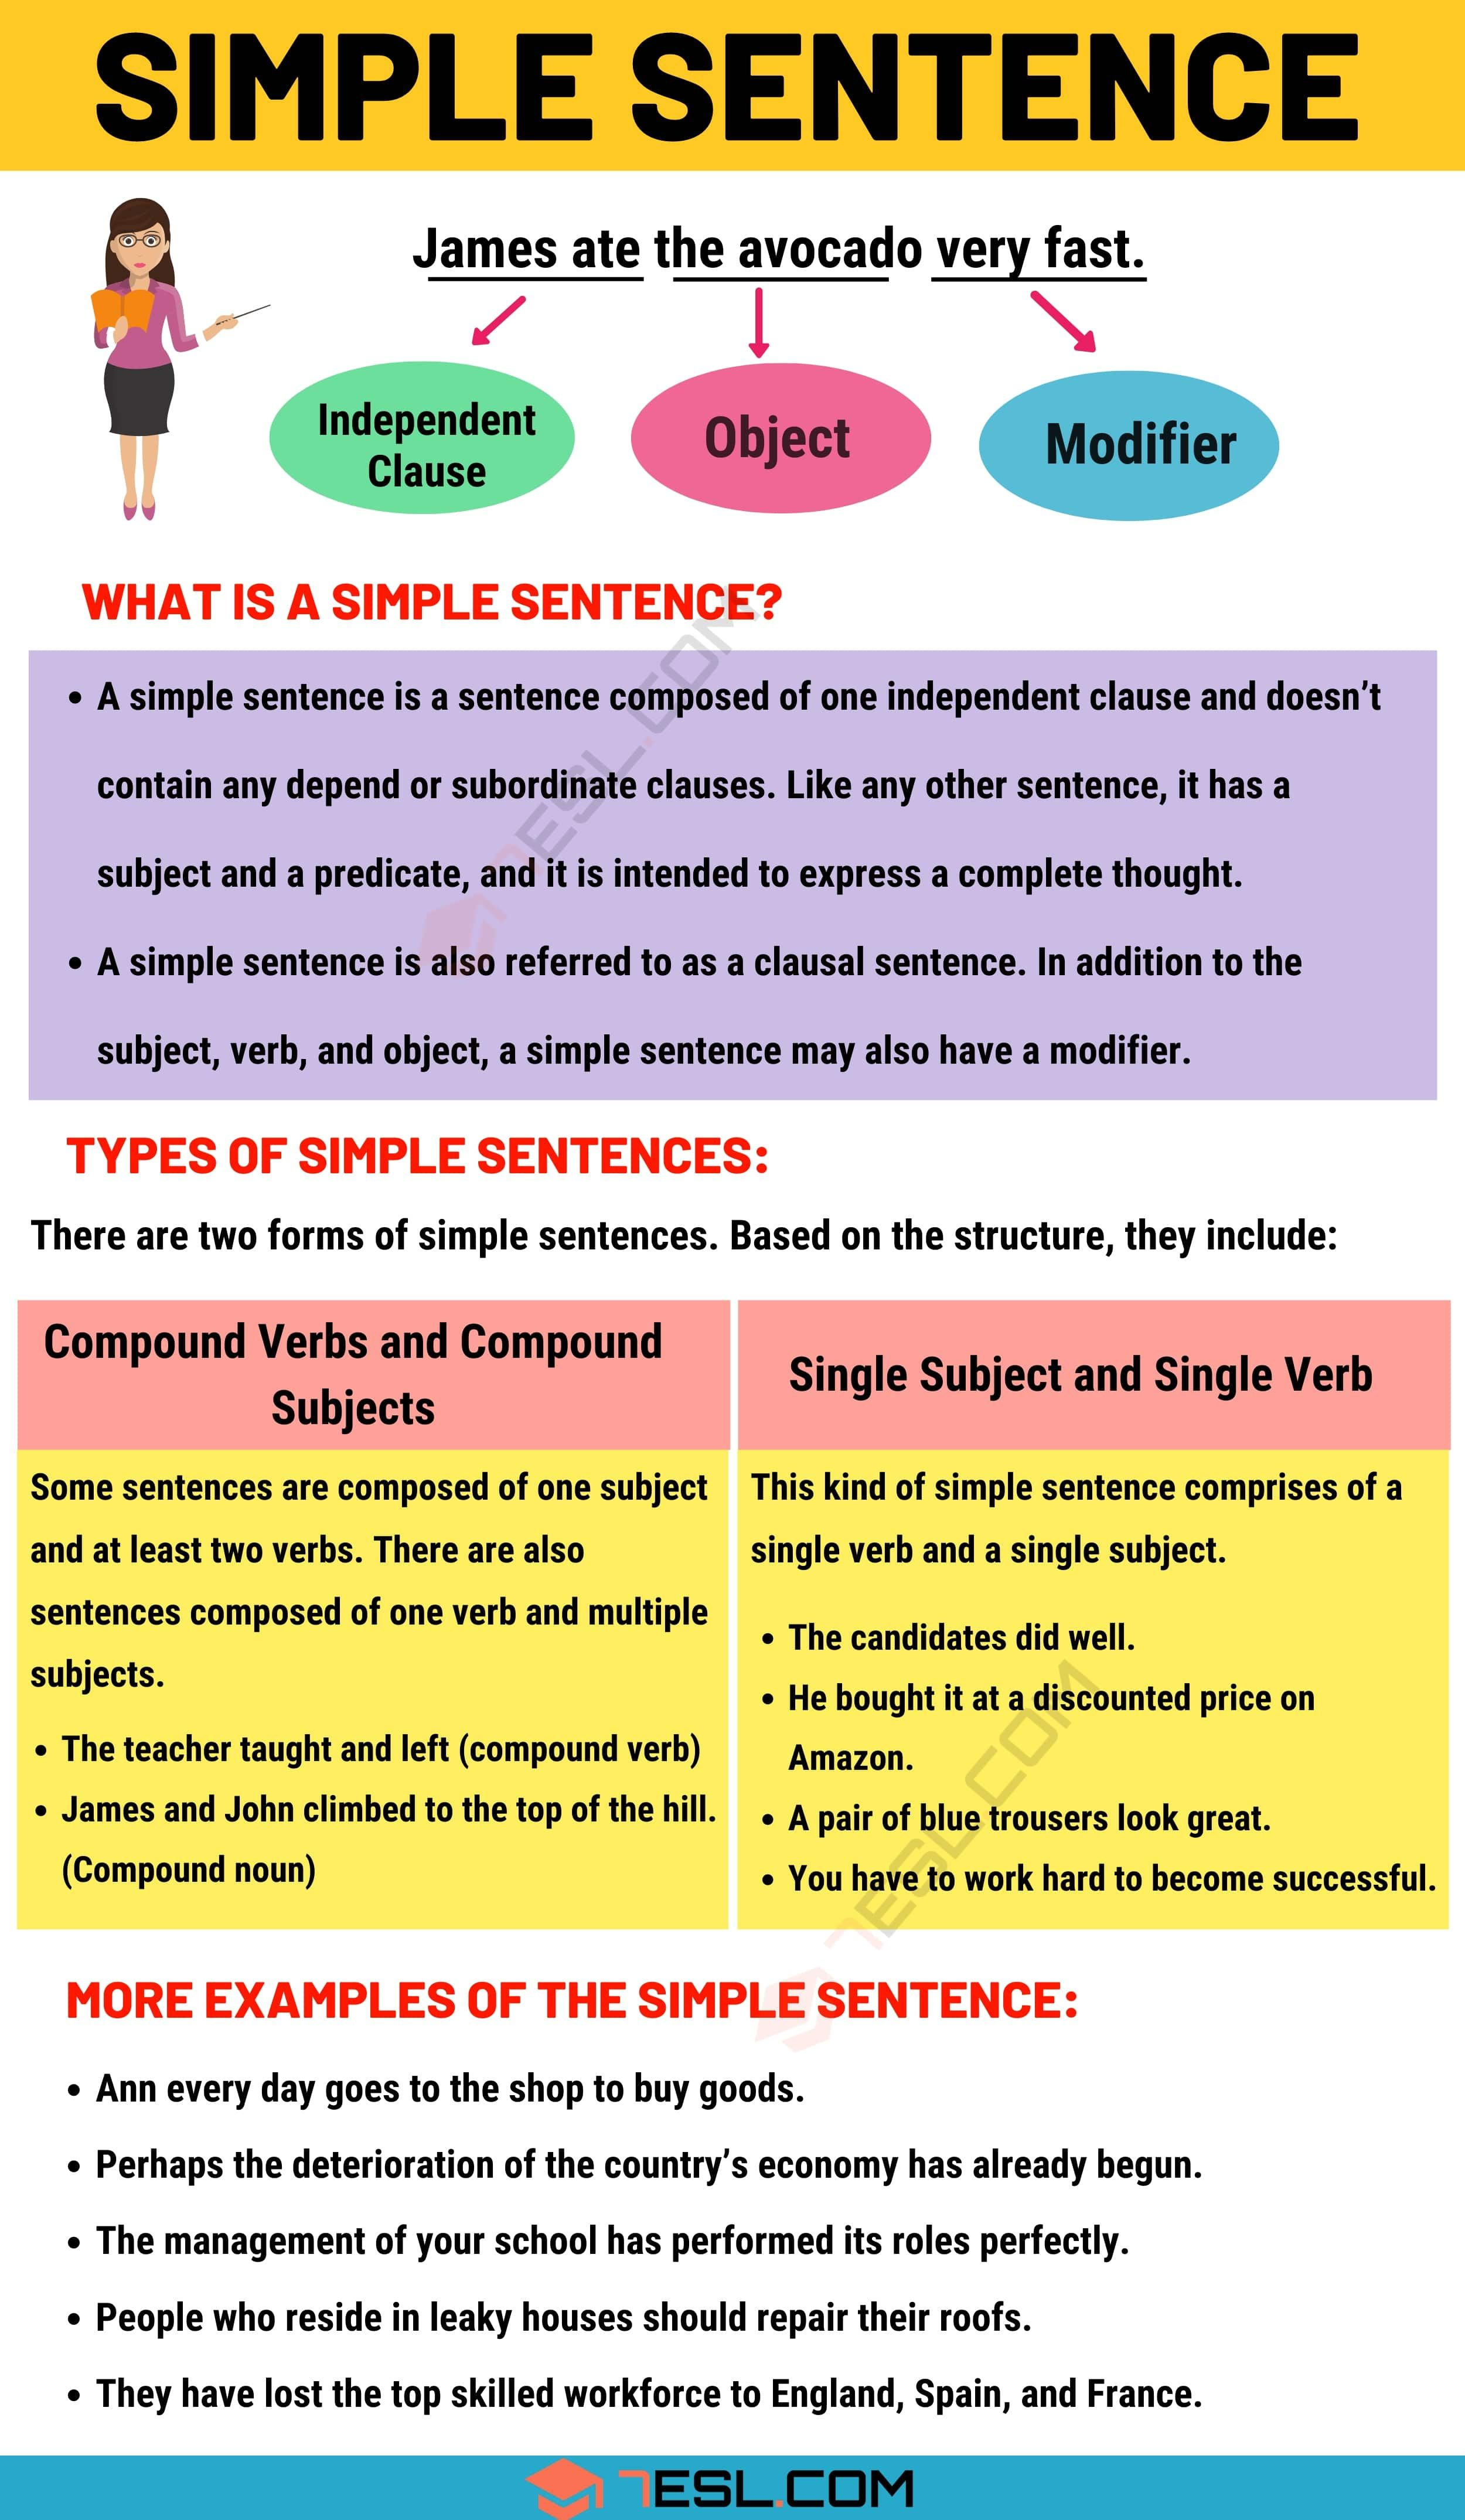 Simple Sentence: Examples And Definition Of Simple Sentences - 7 E S L in  2020 | Simple sentences, Simple english sentences, English sentences